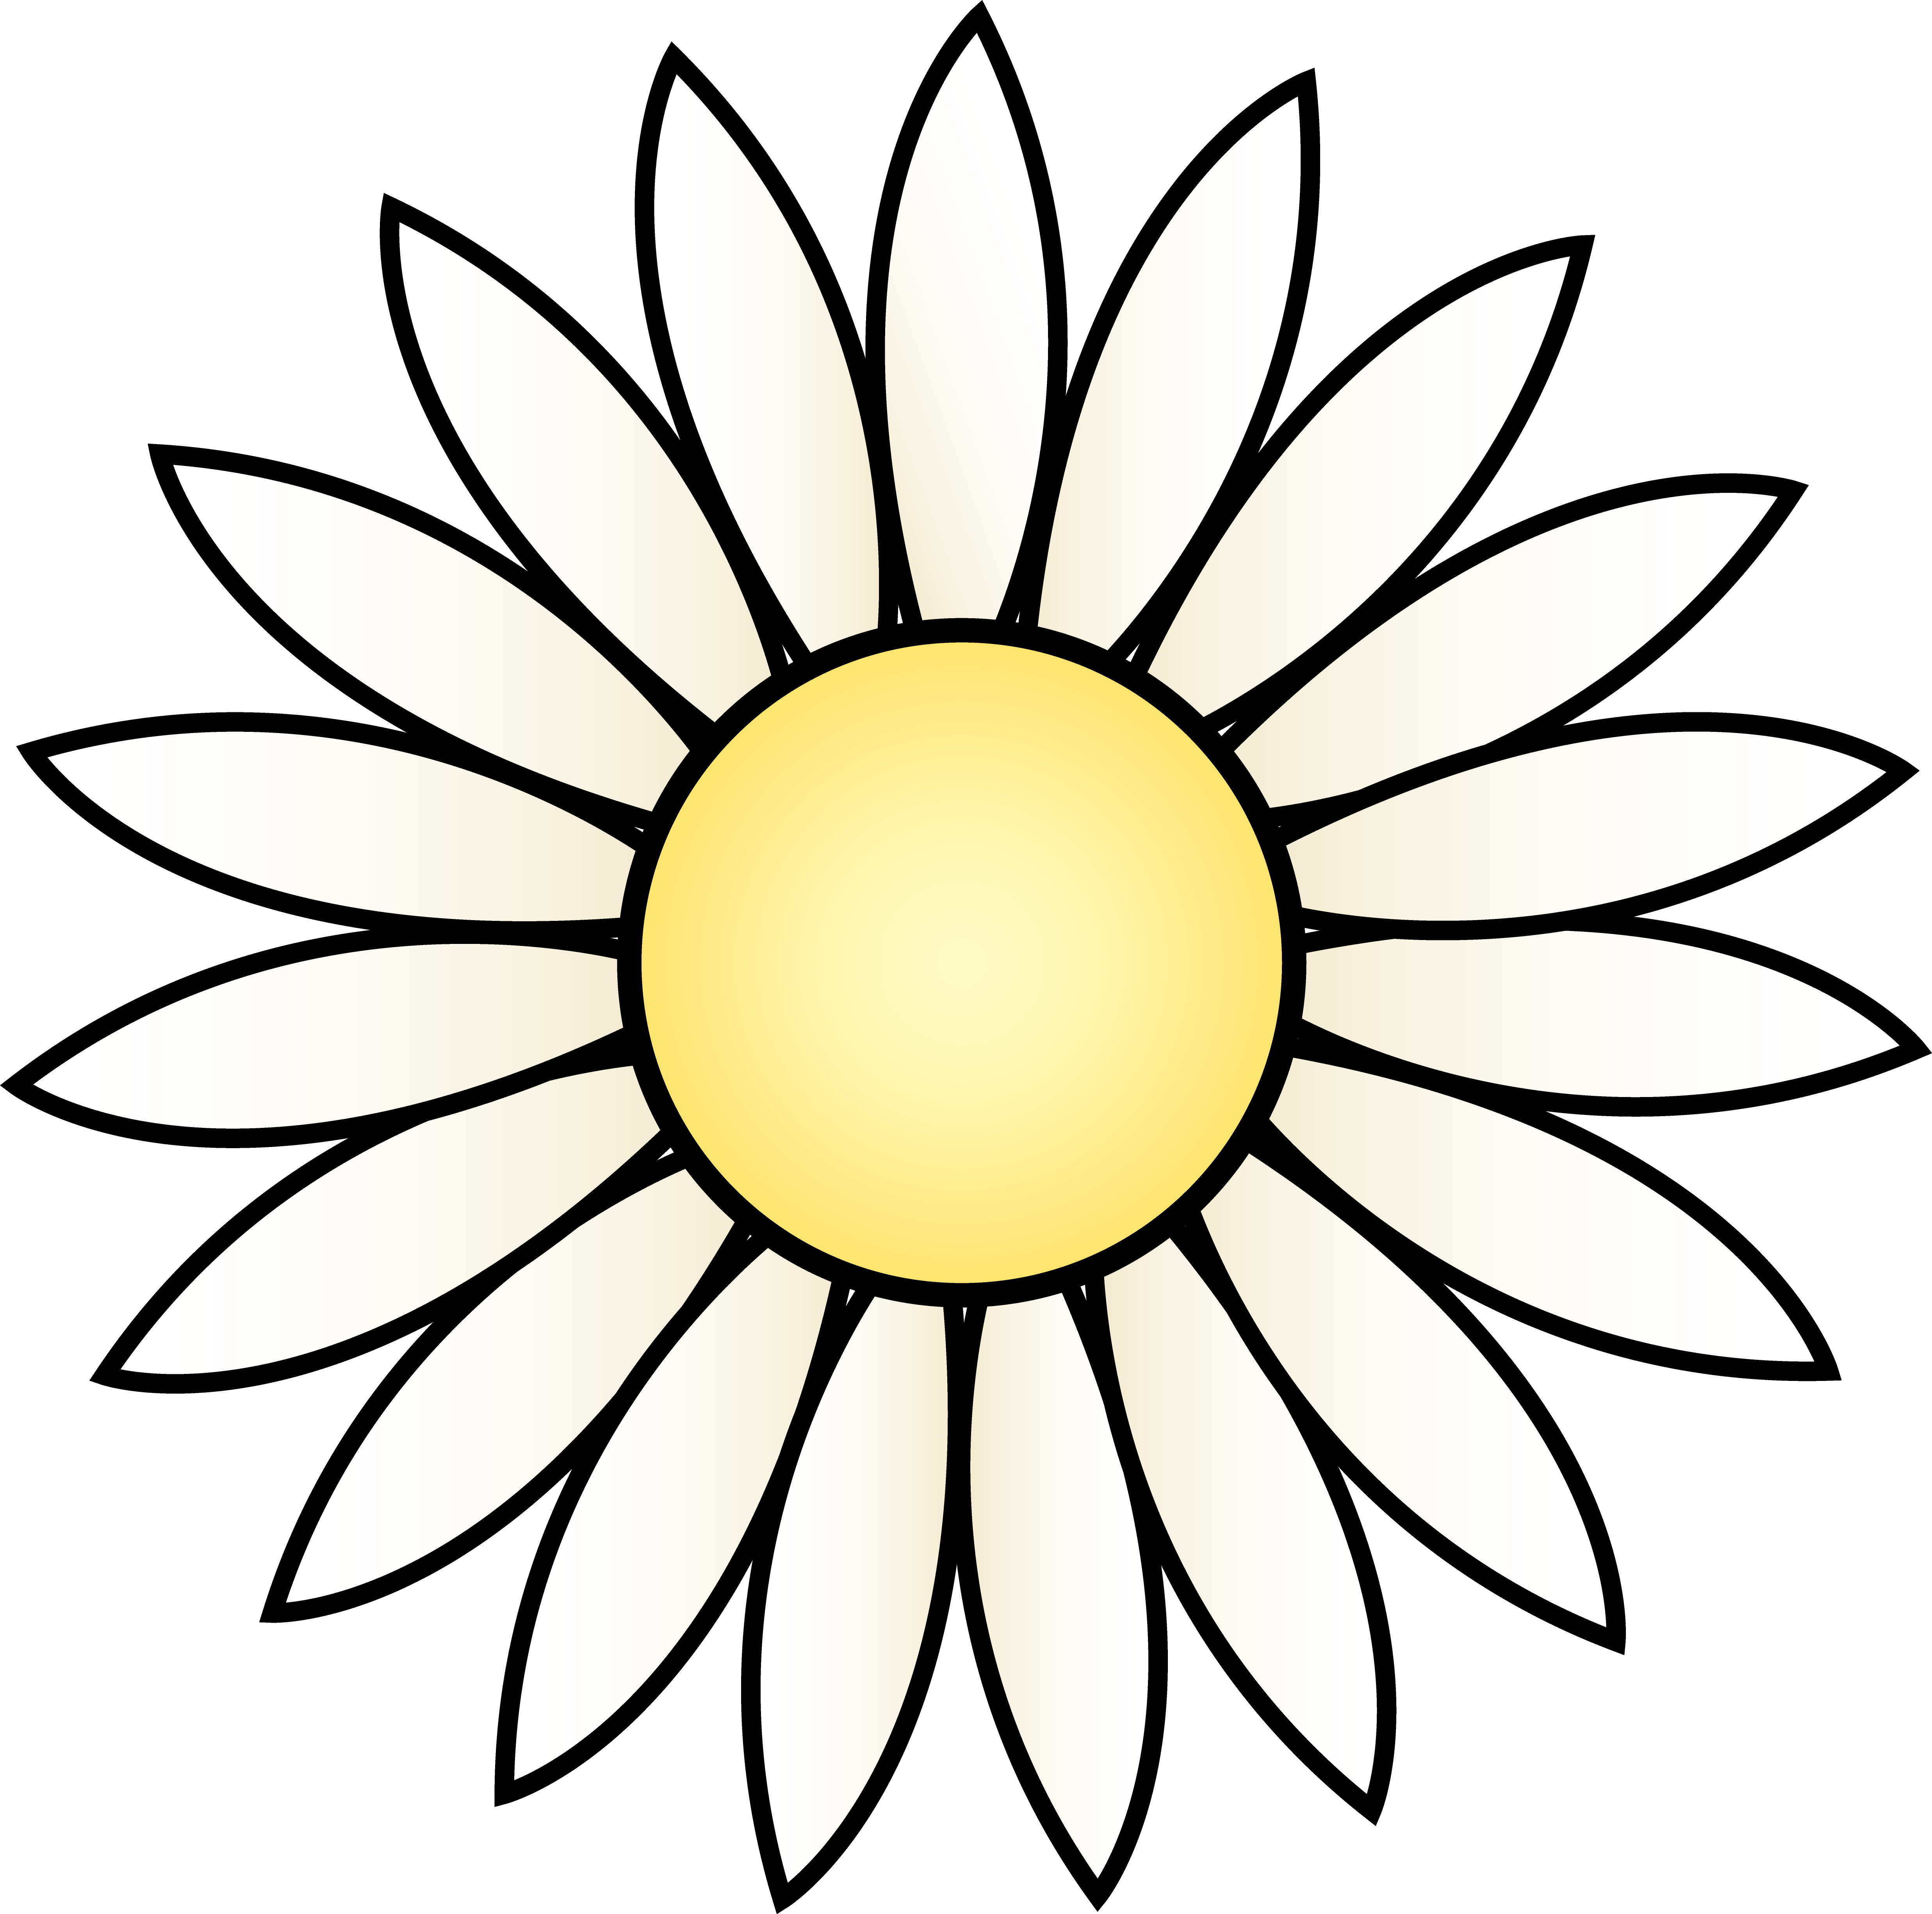 Daisy Clip Art Free Clipart Images 3